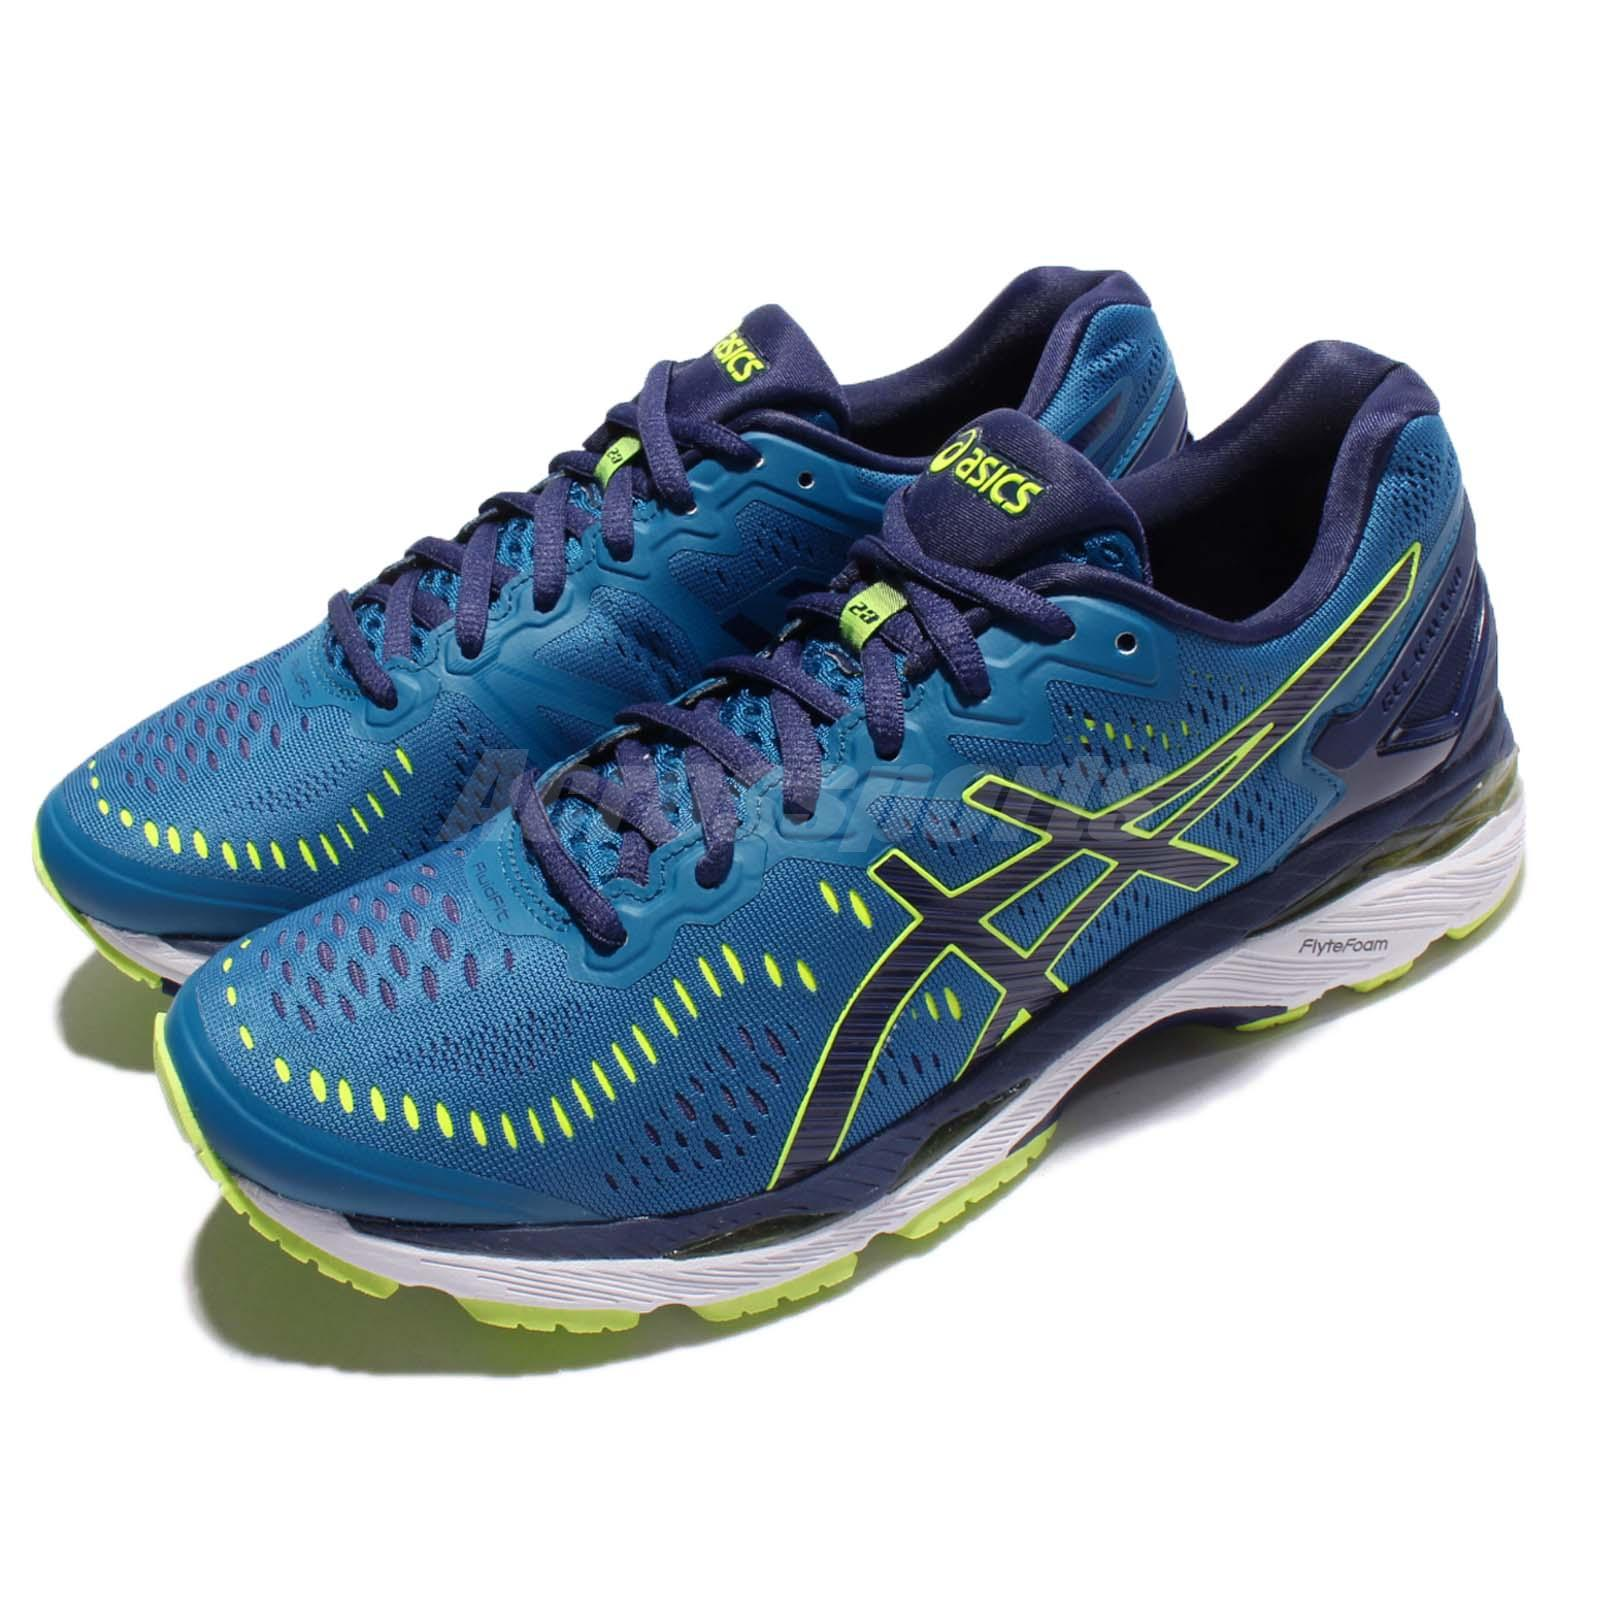 Details about Asics Gel Kayano 23 Blue Yellow Men Running Shoes Sneakers Trainers T646N 4907